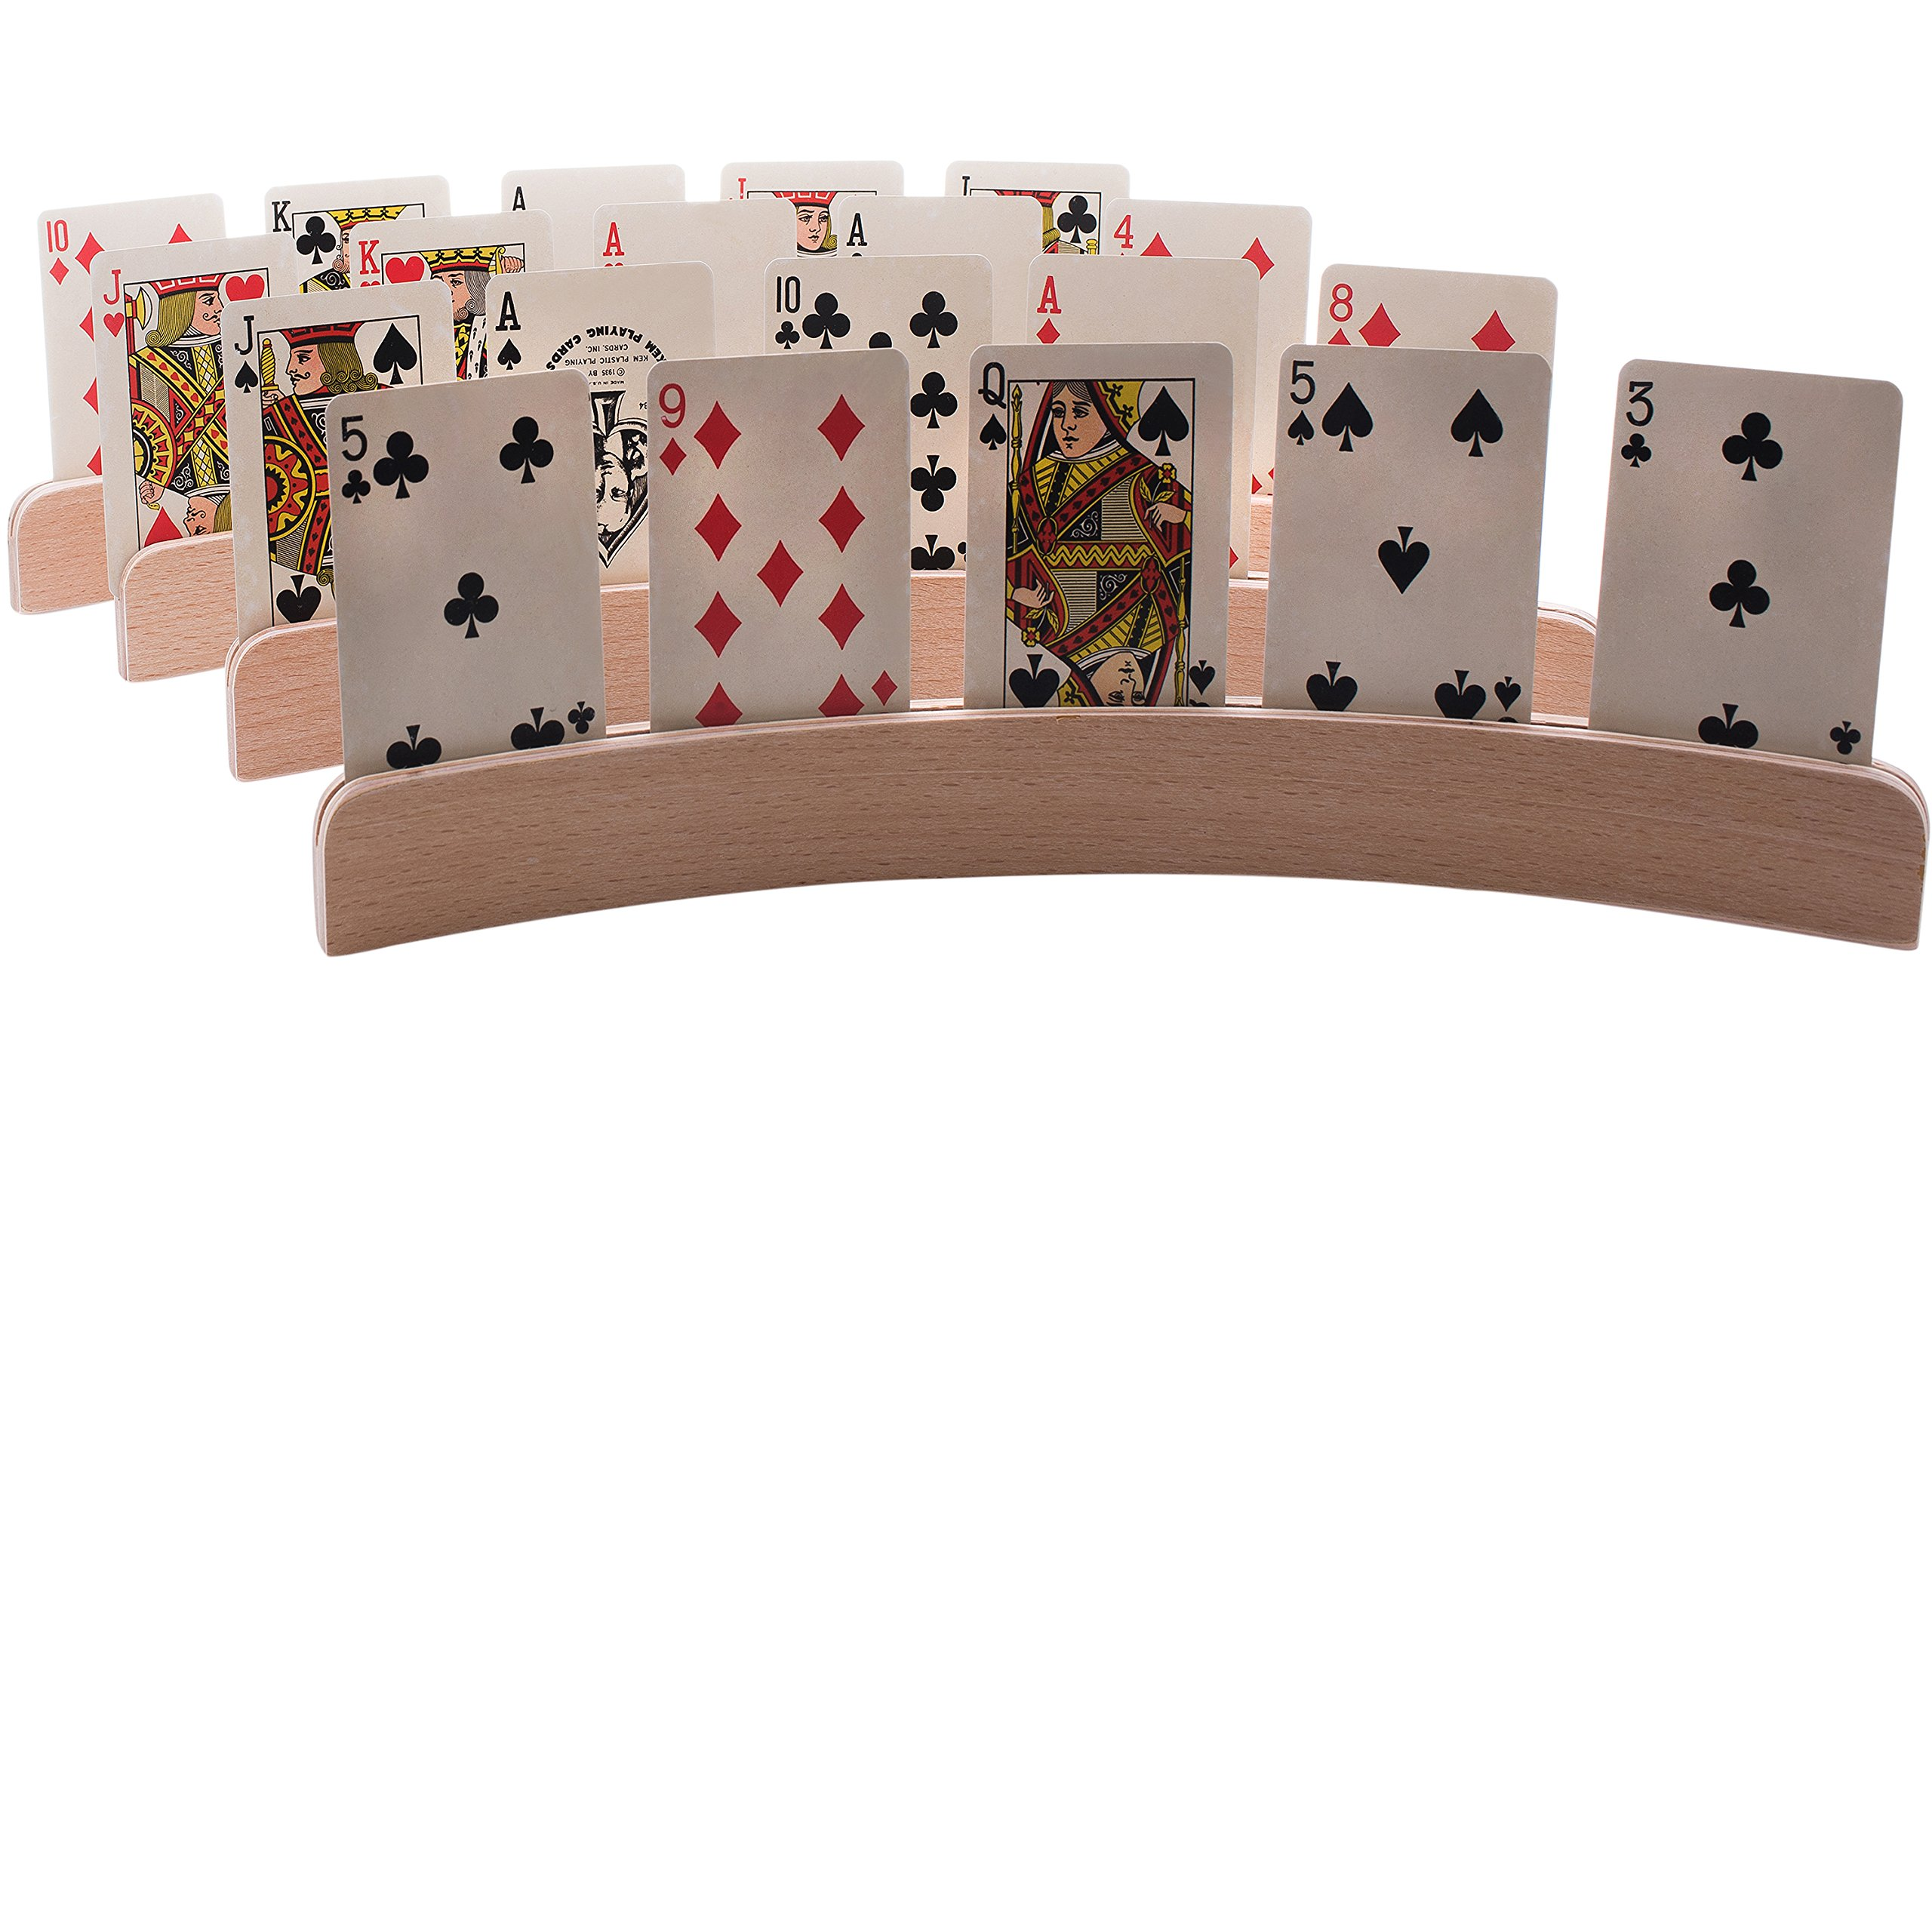 GrowUpSmart Set of 4 Wooden Playing Card Holders In Curved Design - 14'' Size For Kids, Adults and Seniors alike